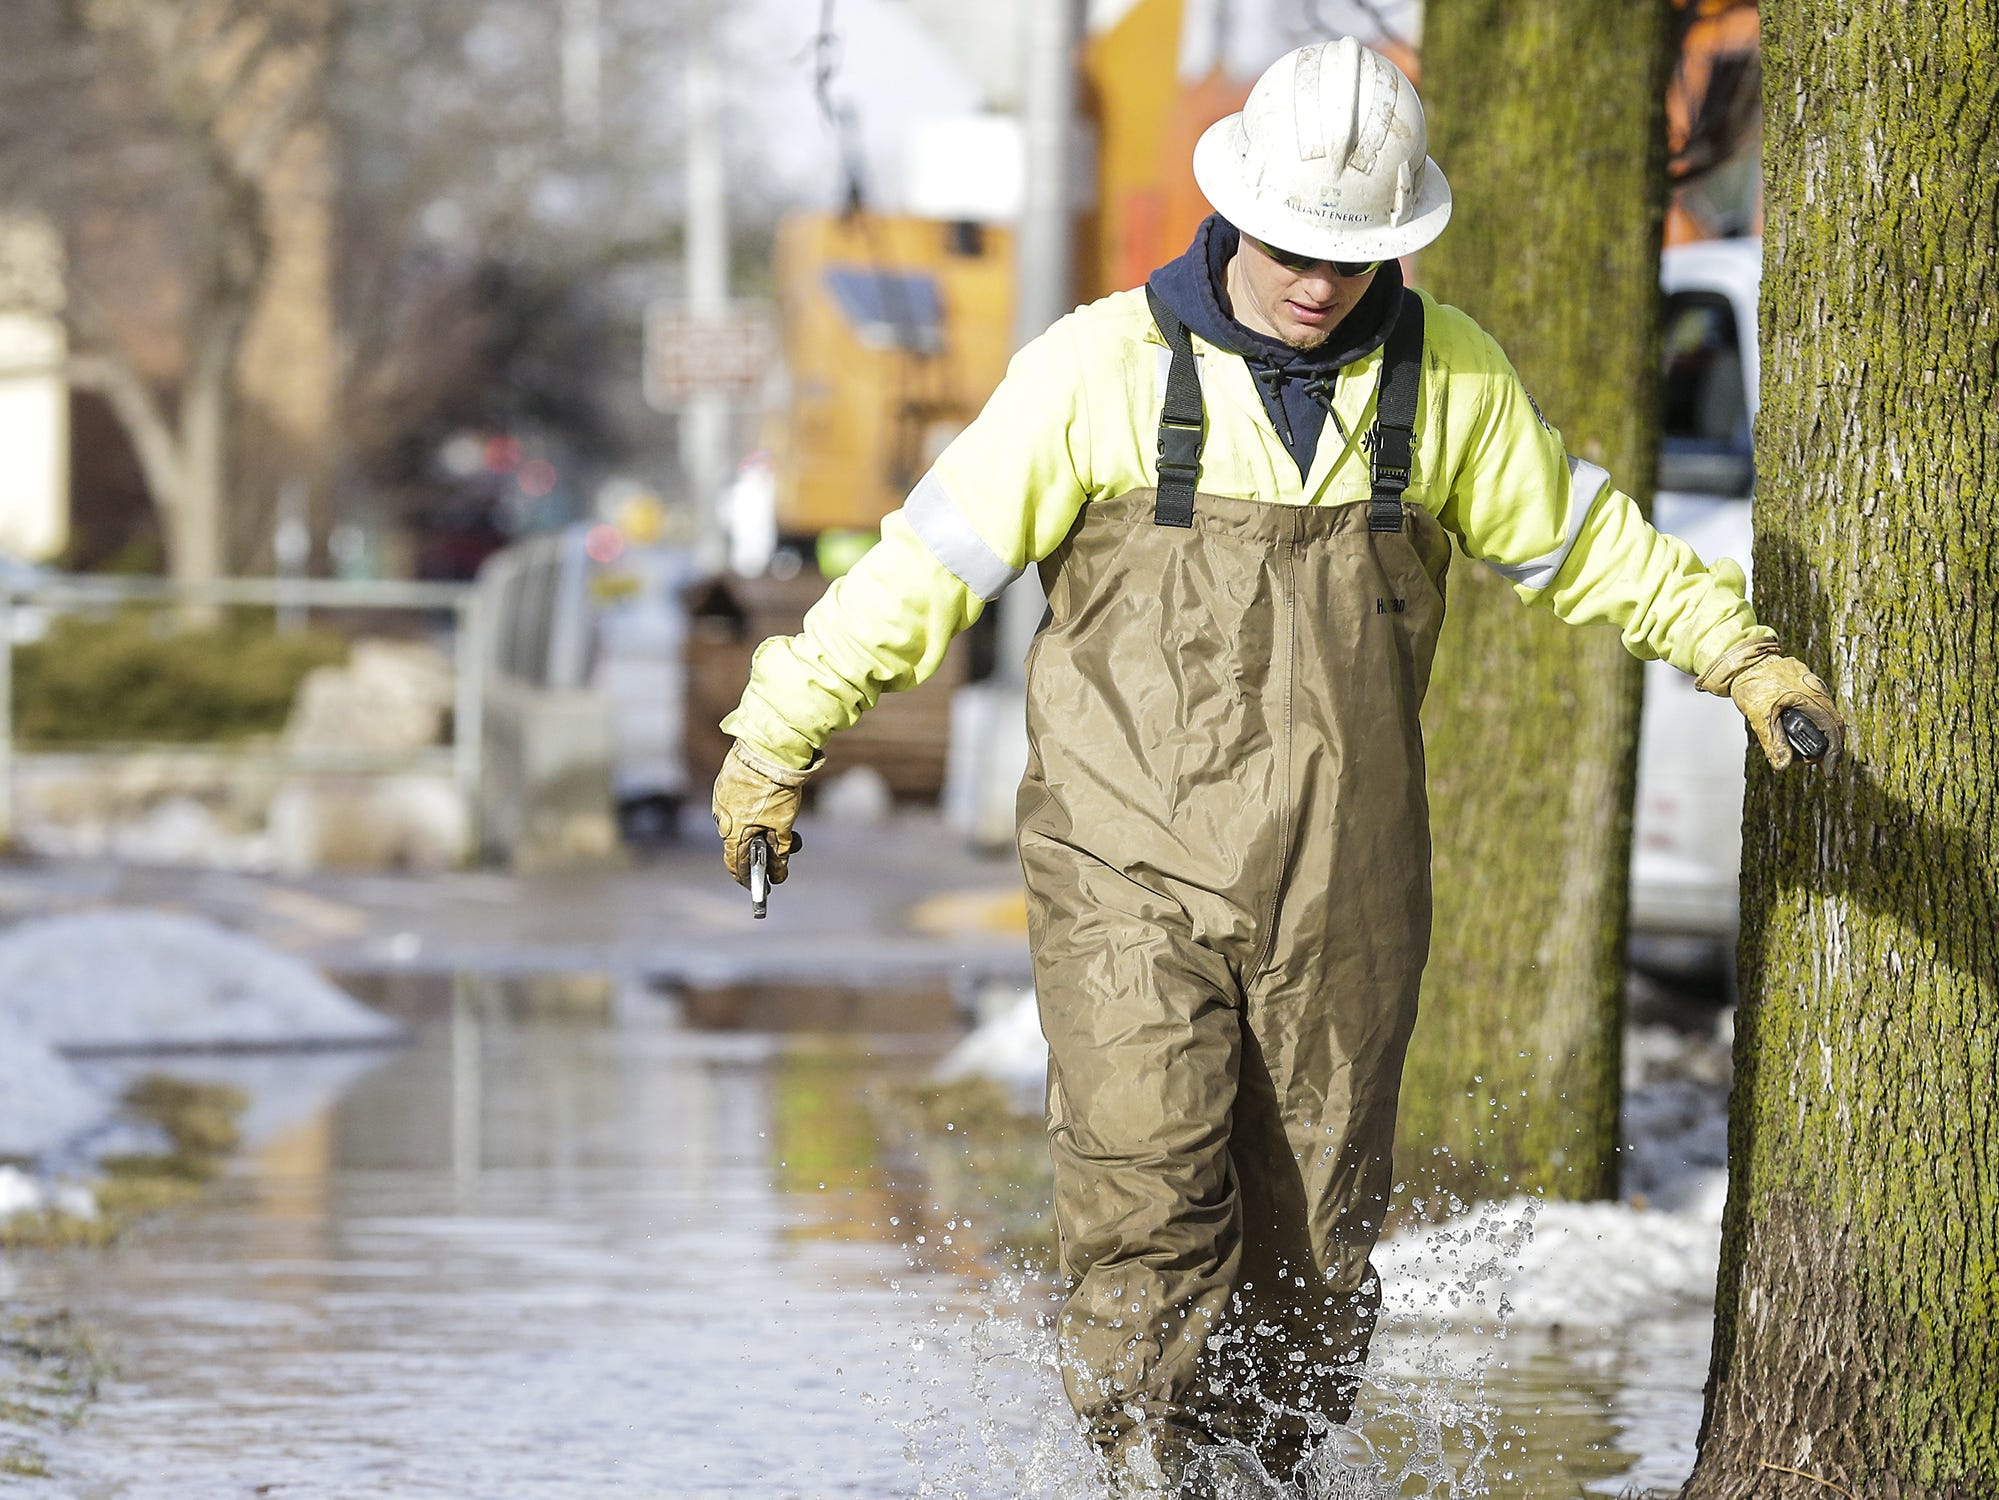 An Alliant Energy worker walks along a flooded sidewalk Thursday, March 14, 2019 on Western Avenue in Fond du Lac, Wis. Ice jams on the east branch of the Fond du Lac River caused localized flooding problems in the city. Doug Raflik/USA TODAY NETWORK-Wisconsin